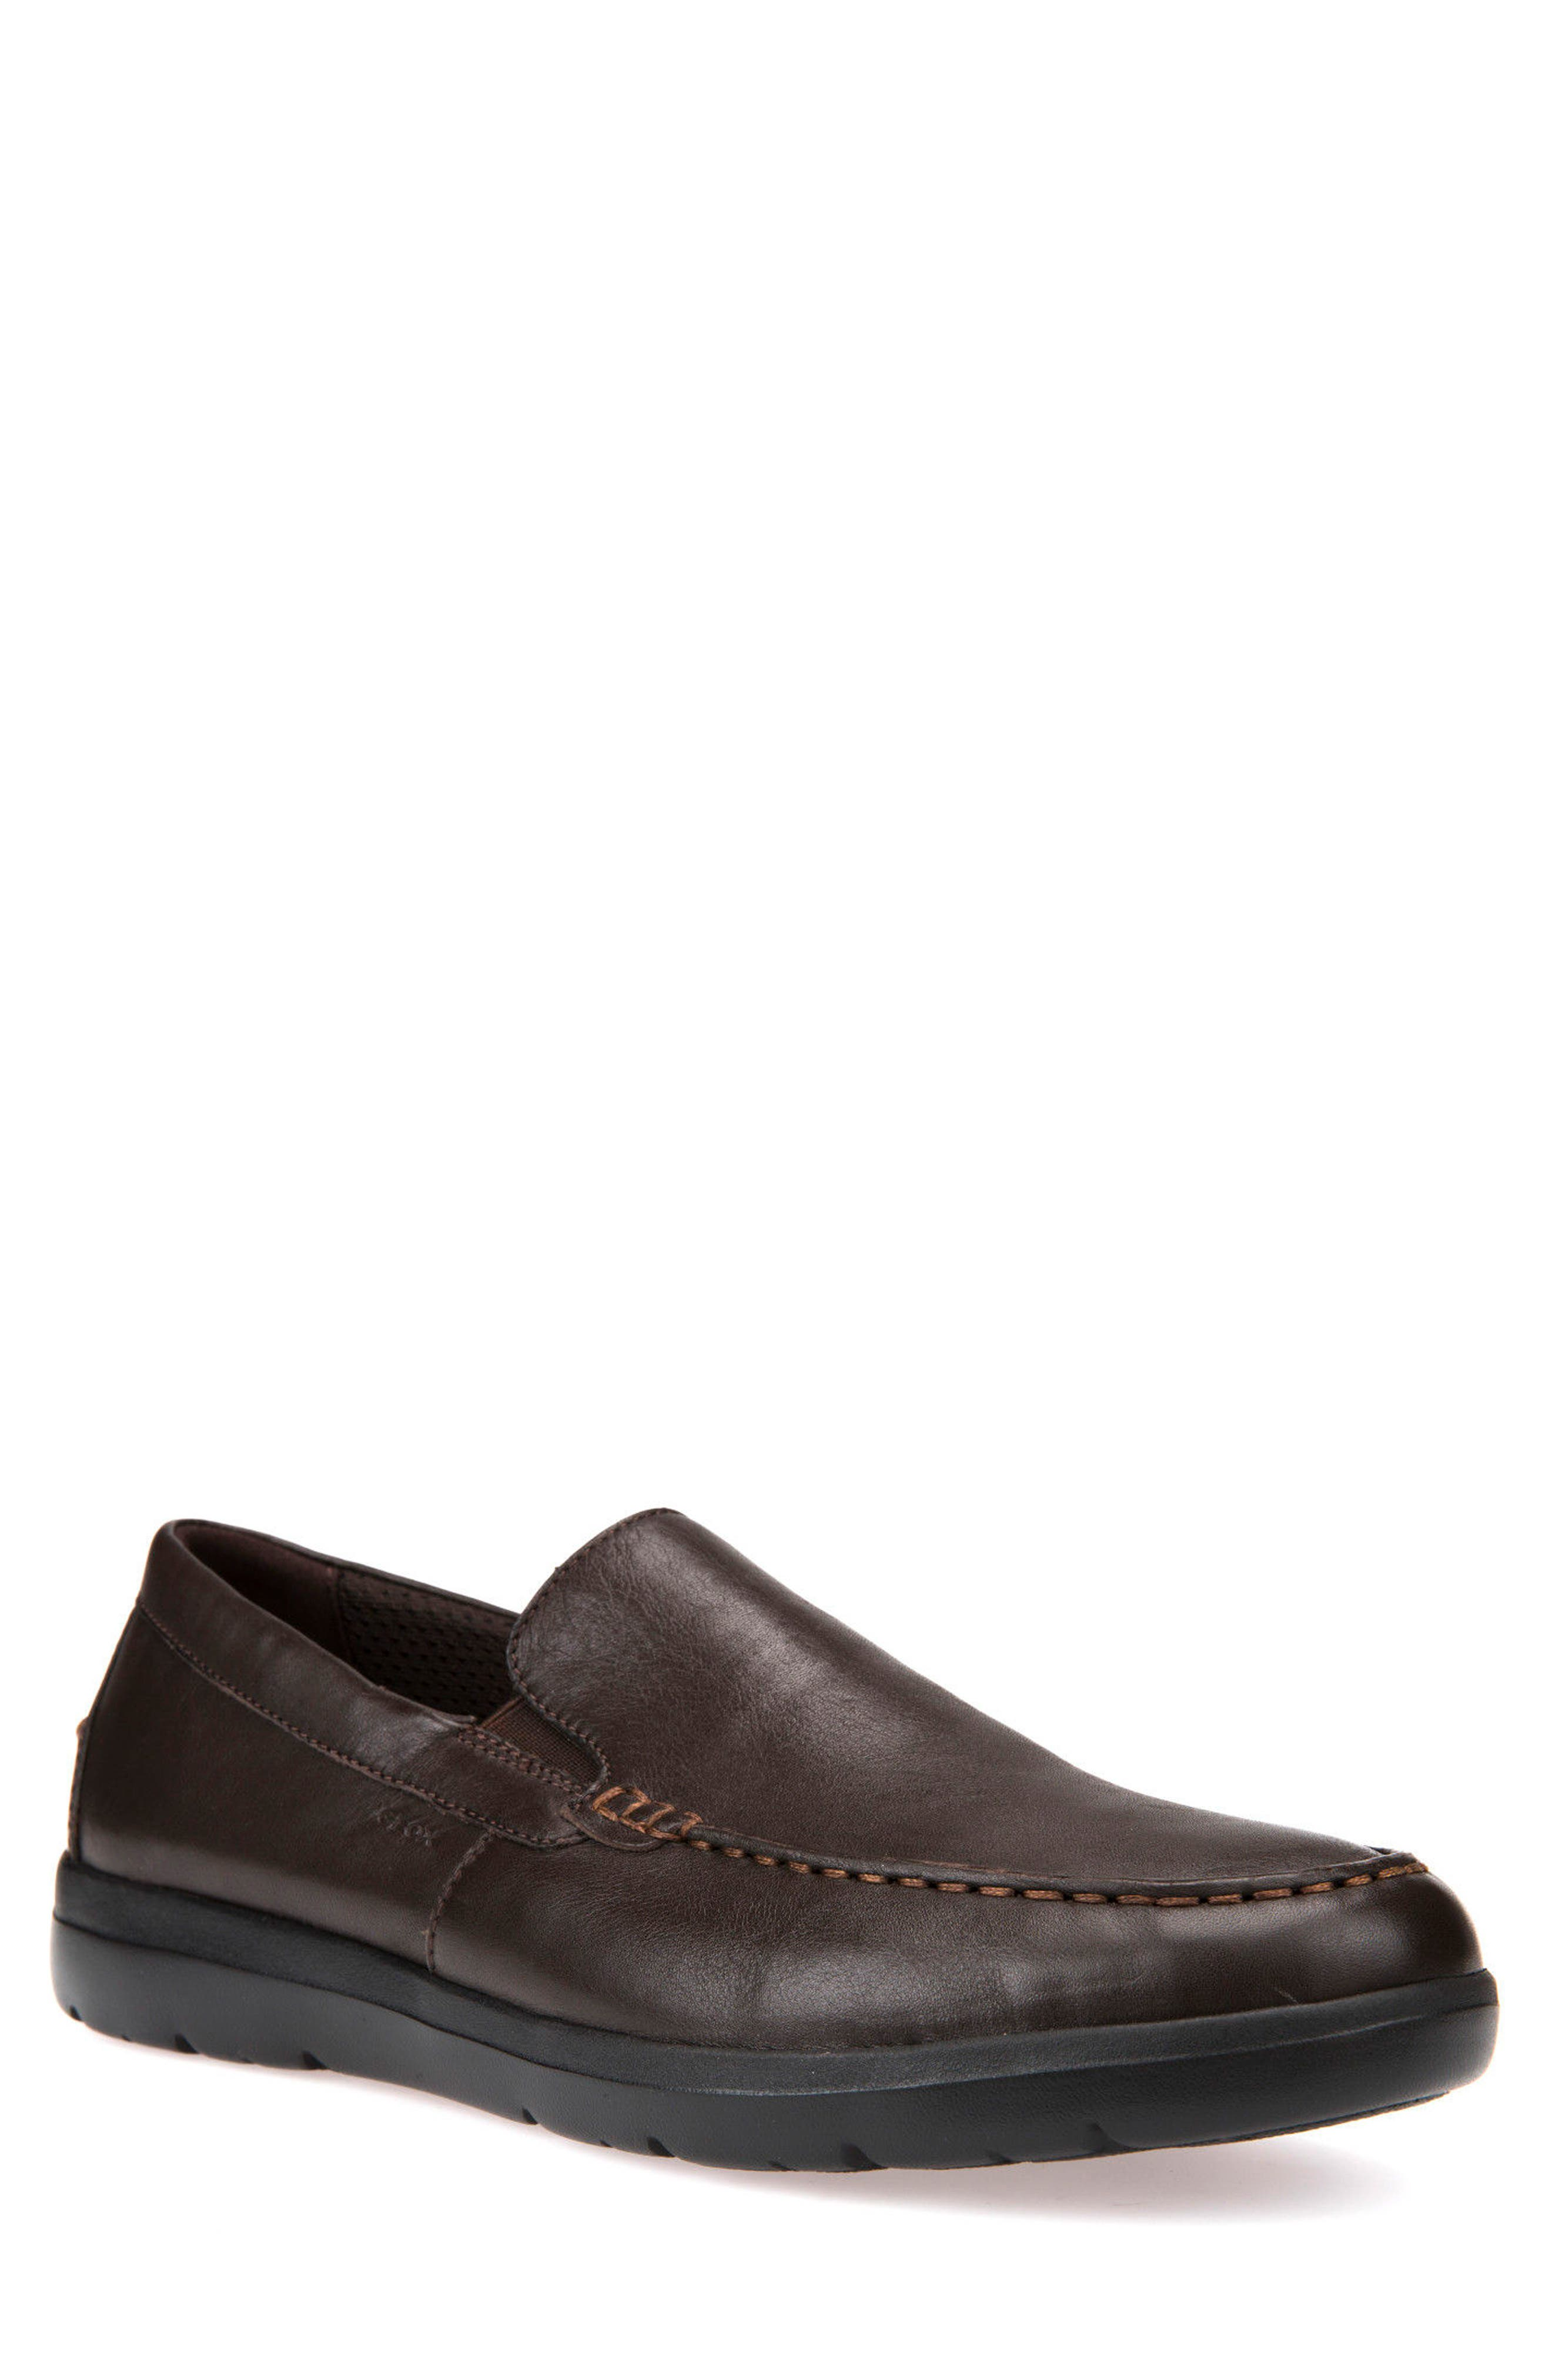 Leitan Loafer,                             Main thumbnail 1, color,                             COFFEE